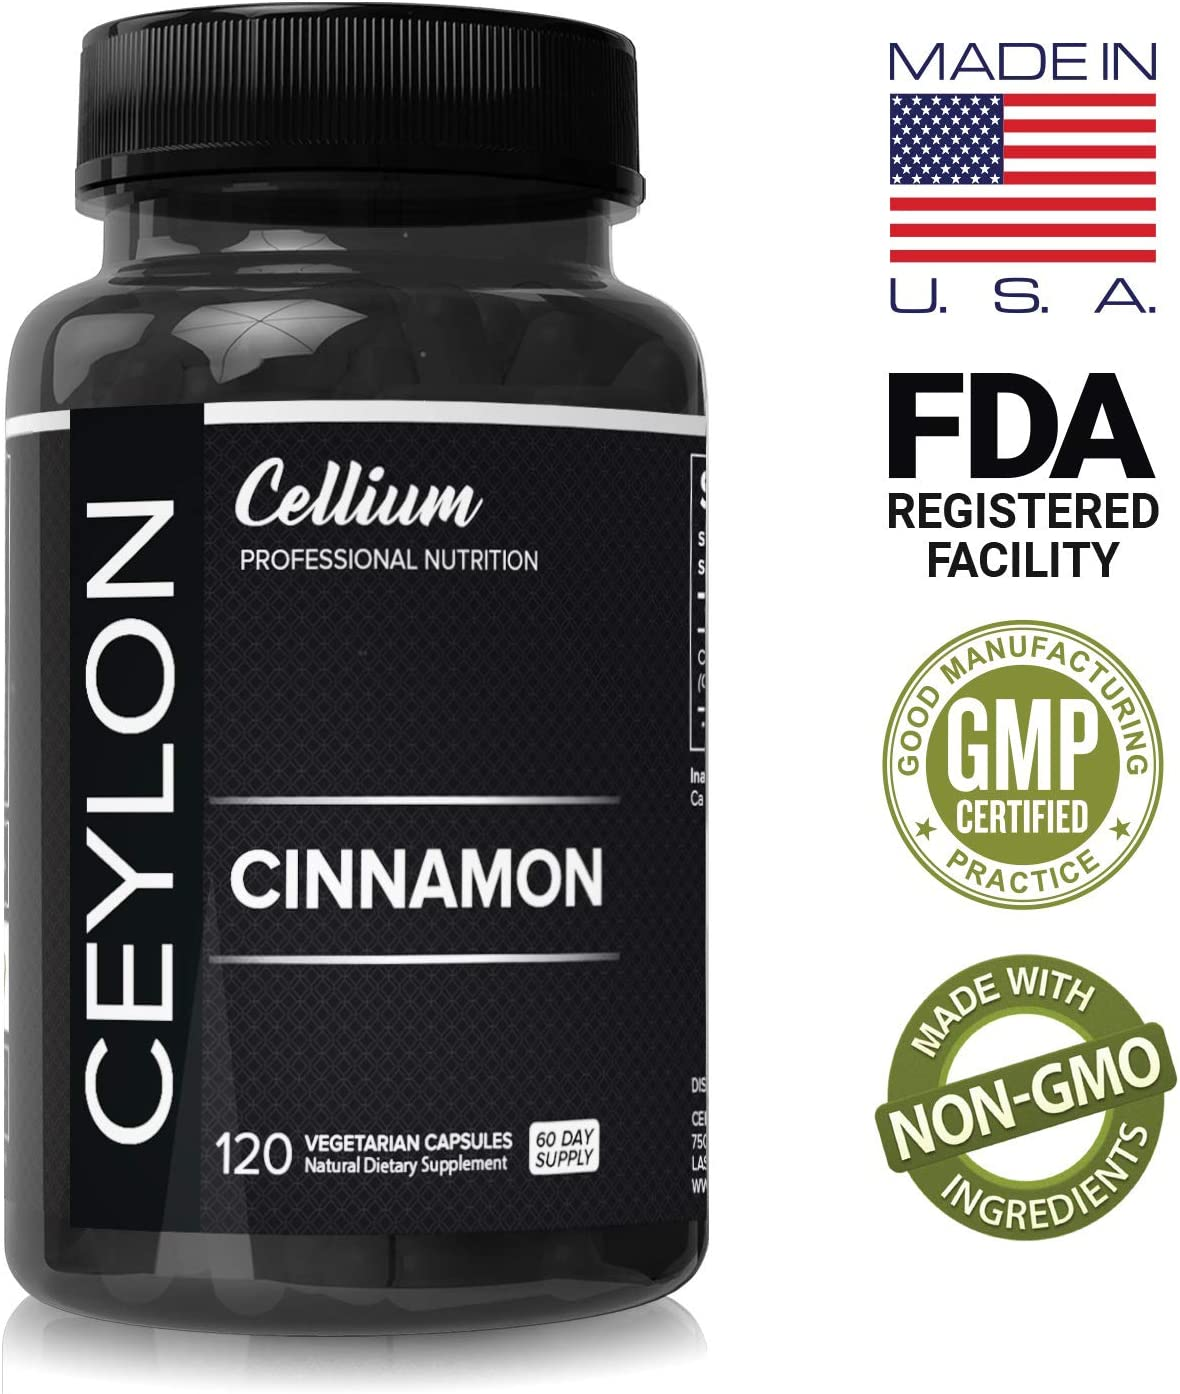 Organic Ceylon Cinnamon Capsules 1200mg - 120 Pills - Lower Blood Sugar Levels Improve Joint Mobility & Promote Weight Loss - Powerful Anti-Inflammatory & Antioxidant